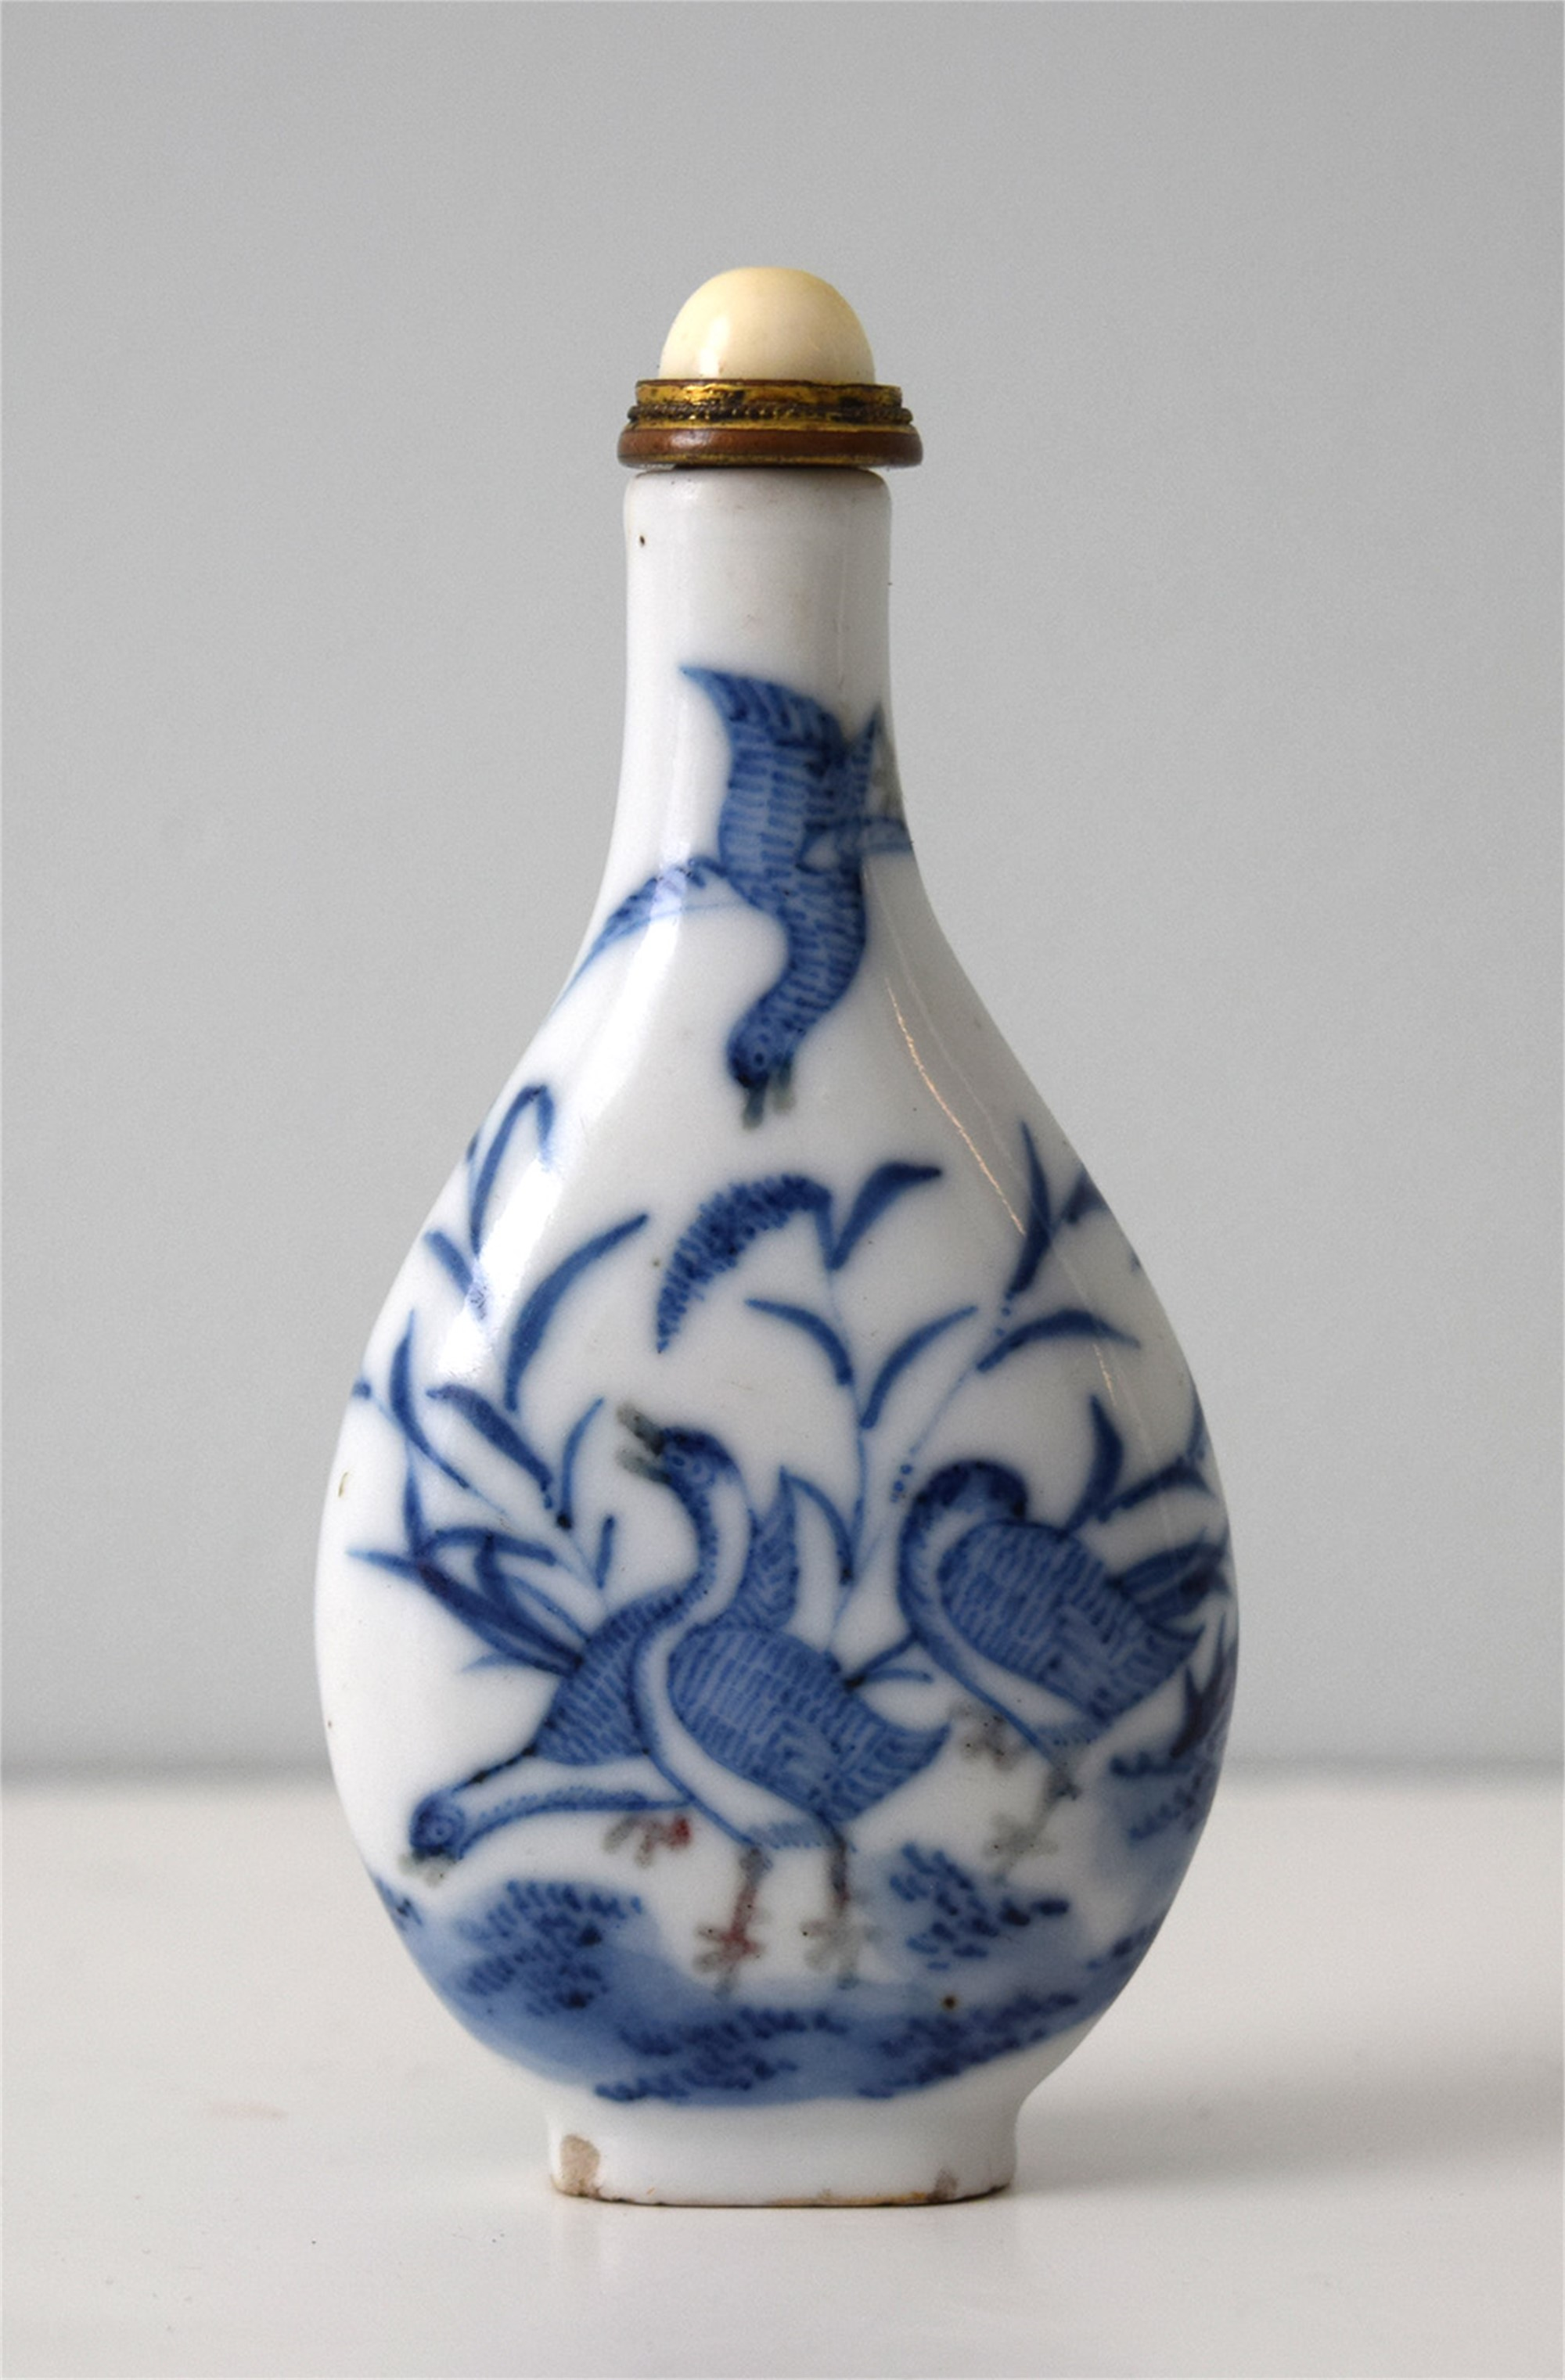 BLUE AND WHITE PORCELAIN SNUFF BOTTLE WITH GEESE